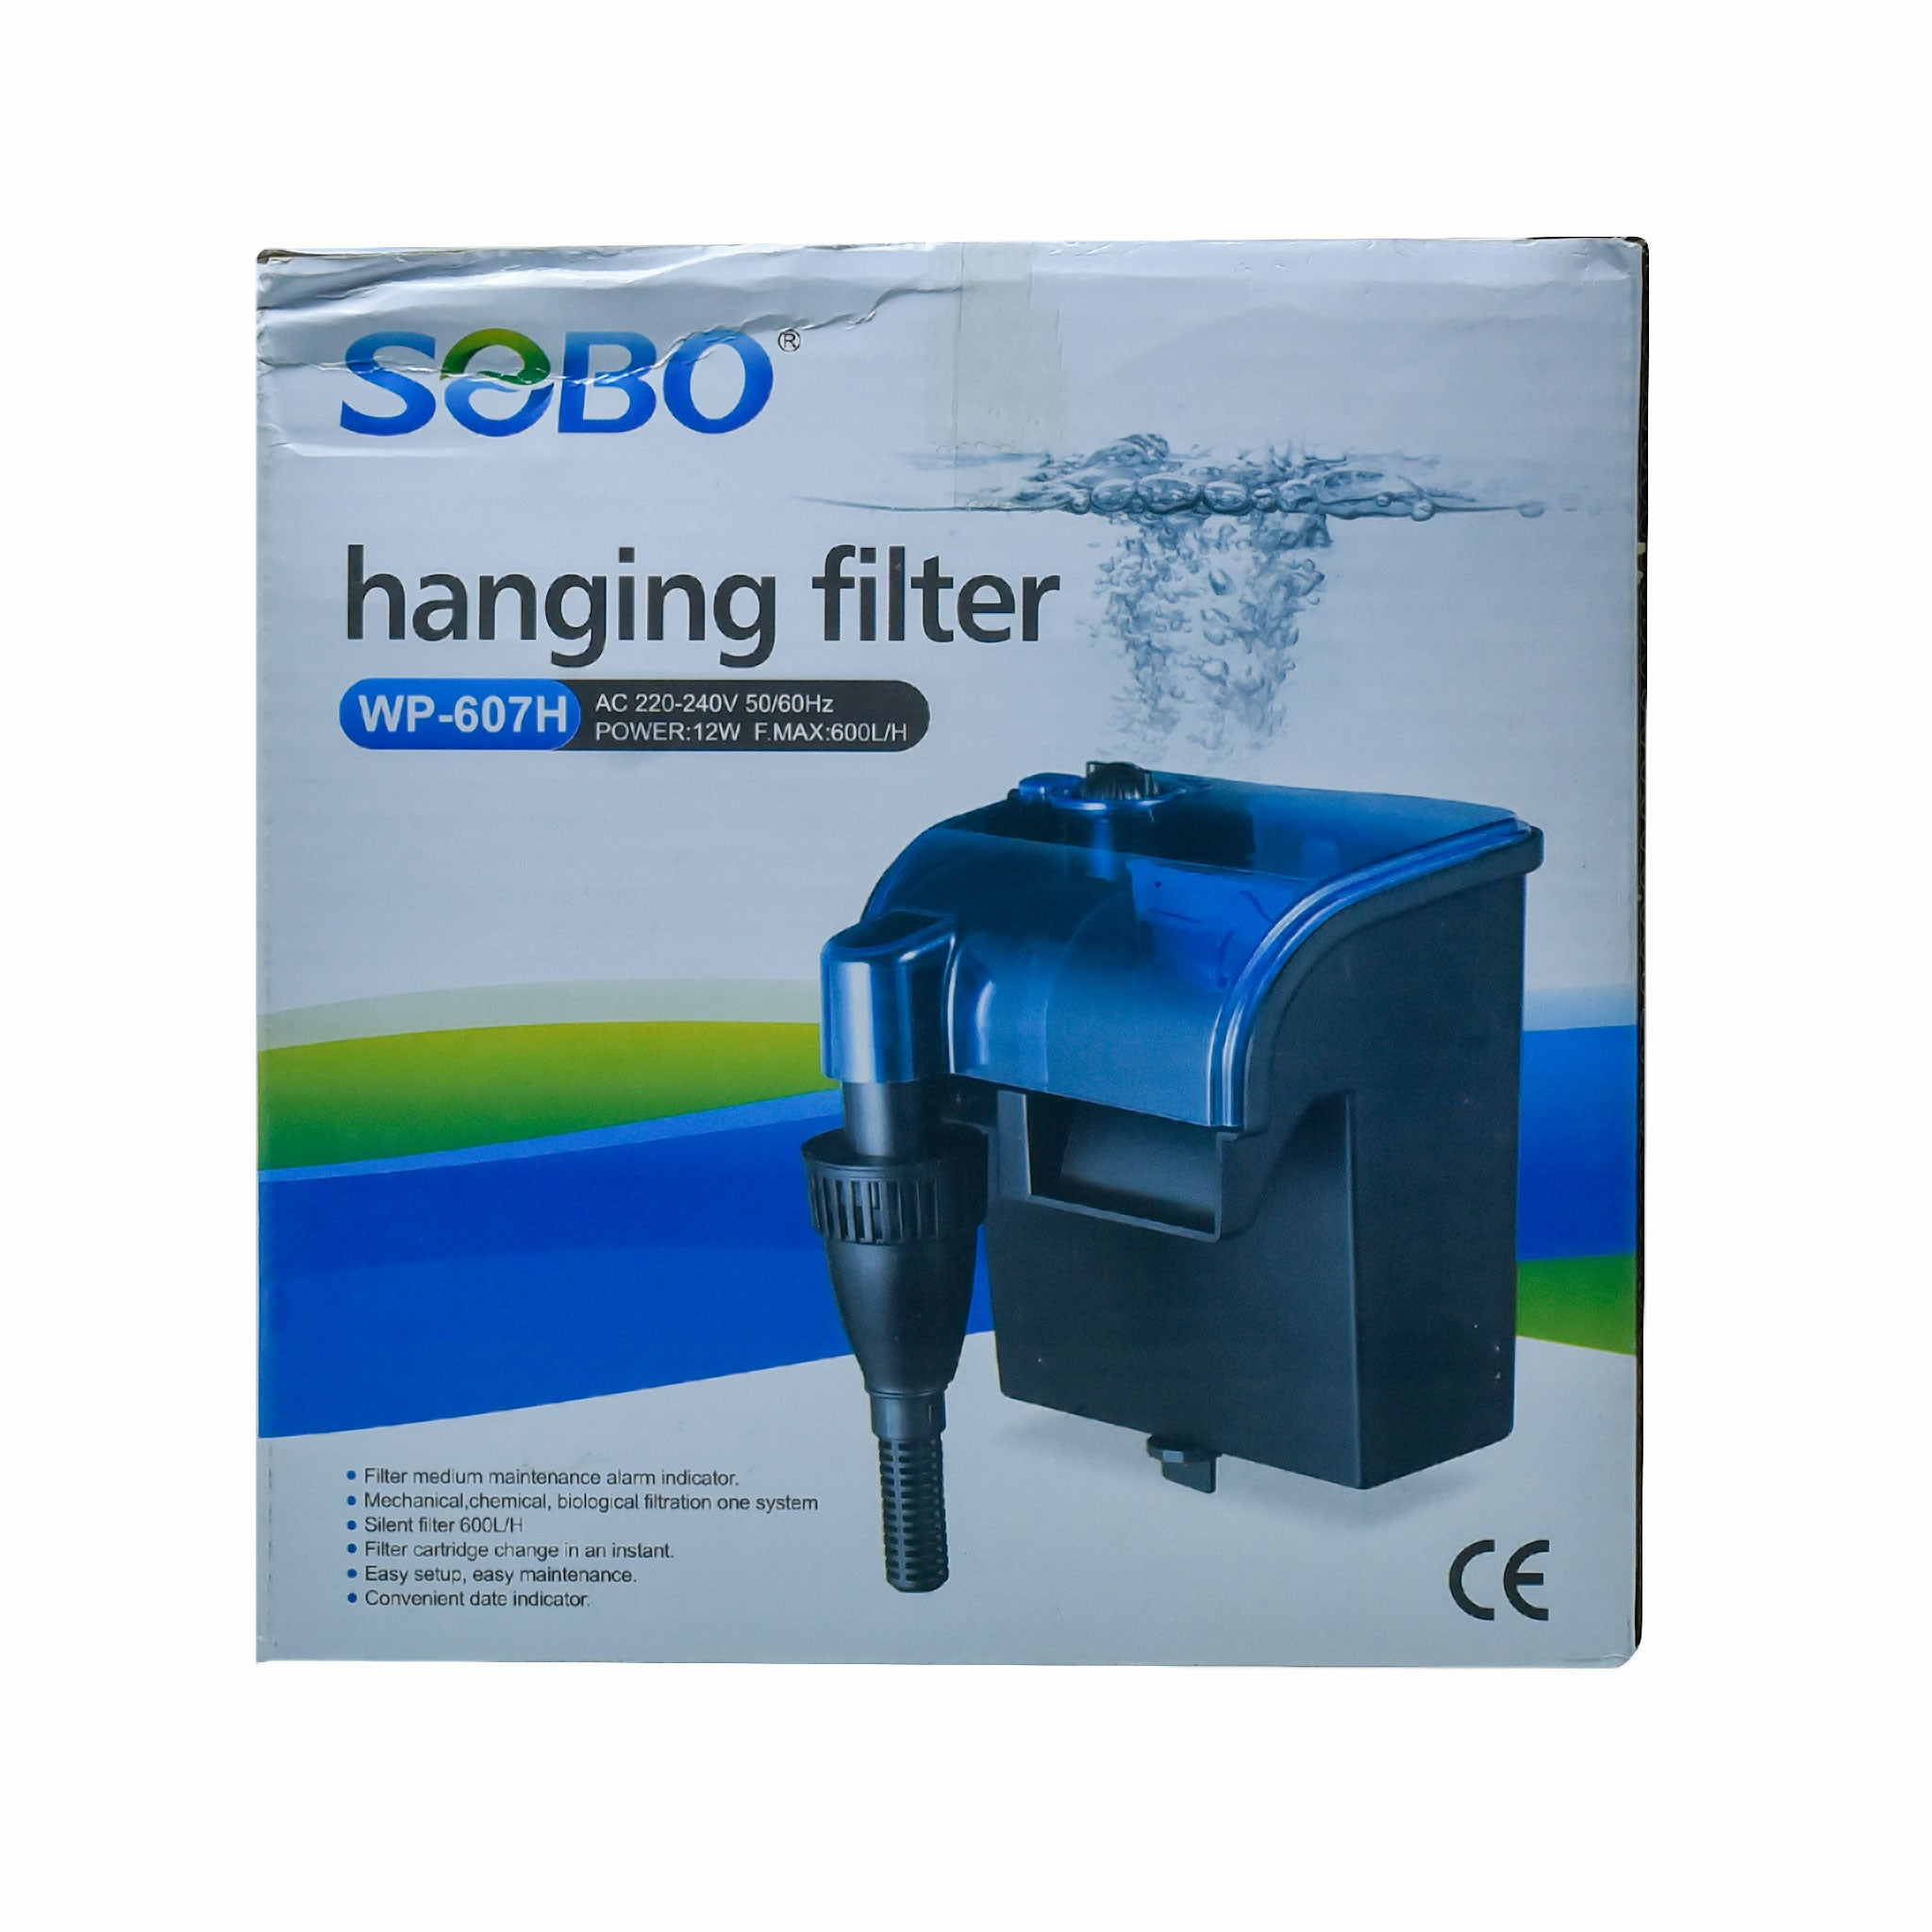 SOBO WP -607H Hanging Filter - nepalaquastudio